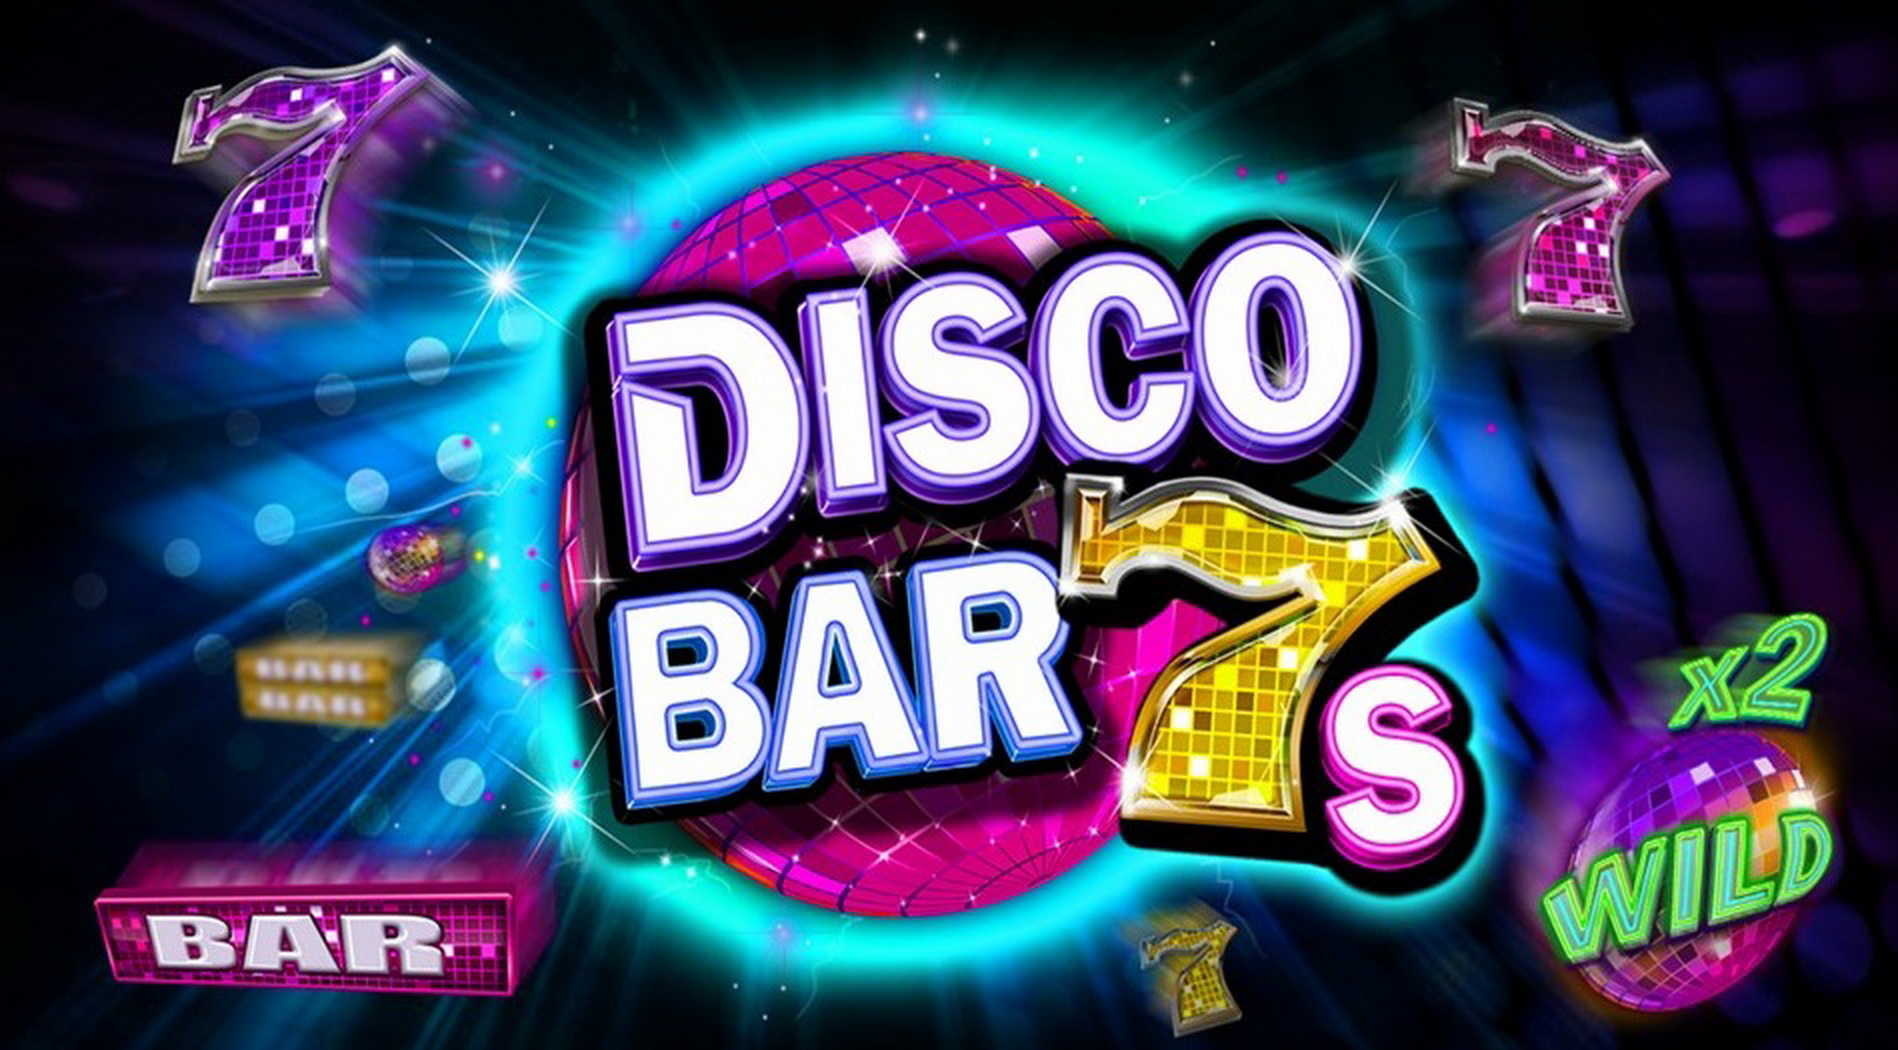 The Disco Bar 7s Online Slot Demo Game by Booming Games